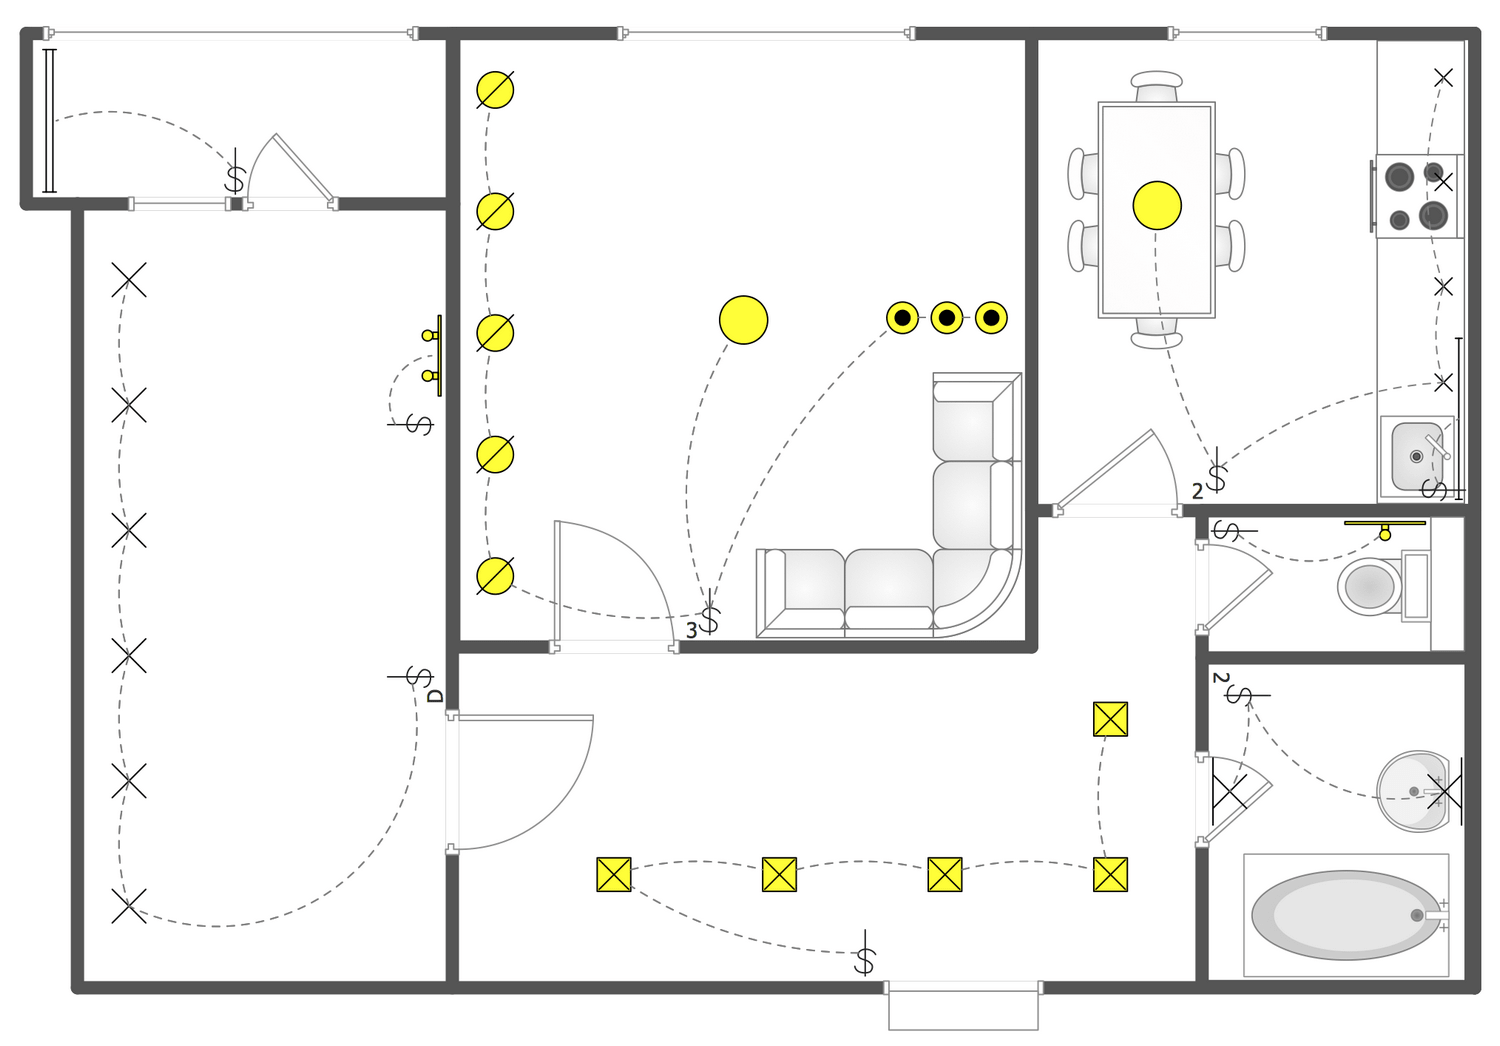 Motion Detector Wiring Diagram